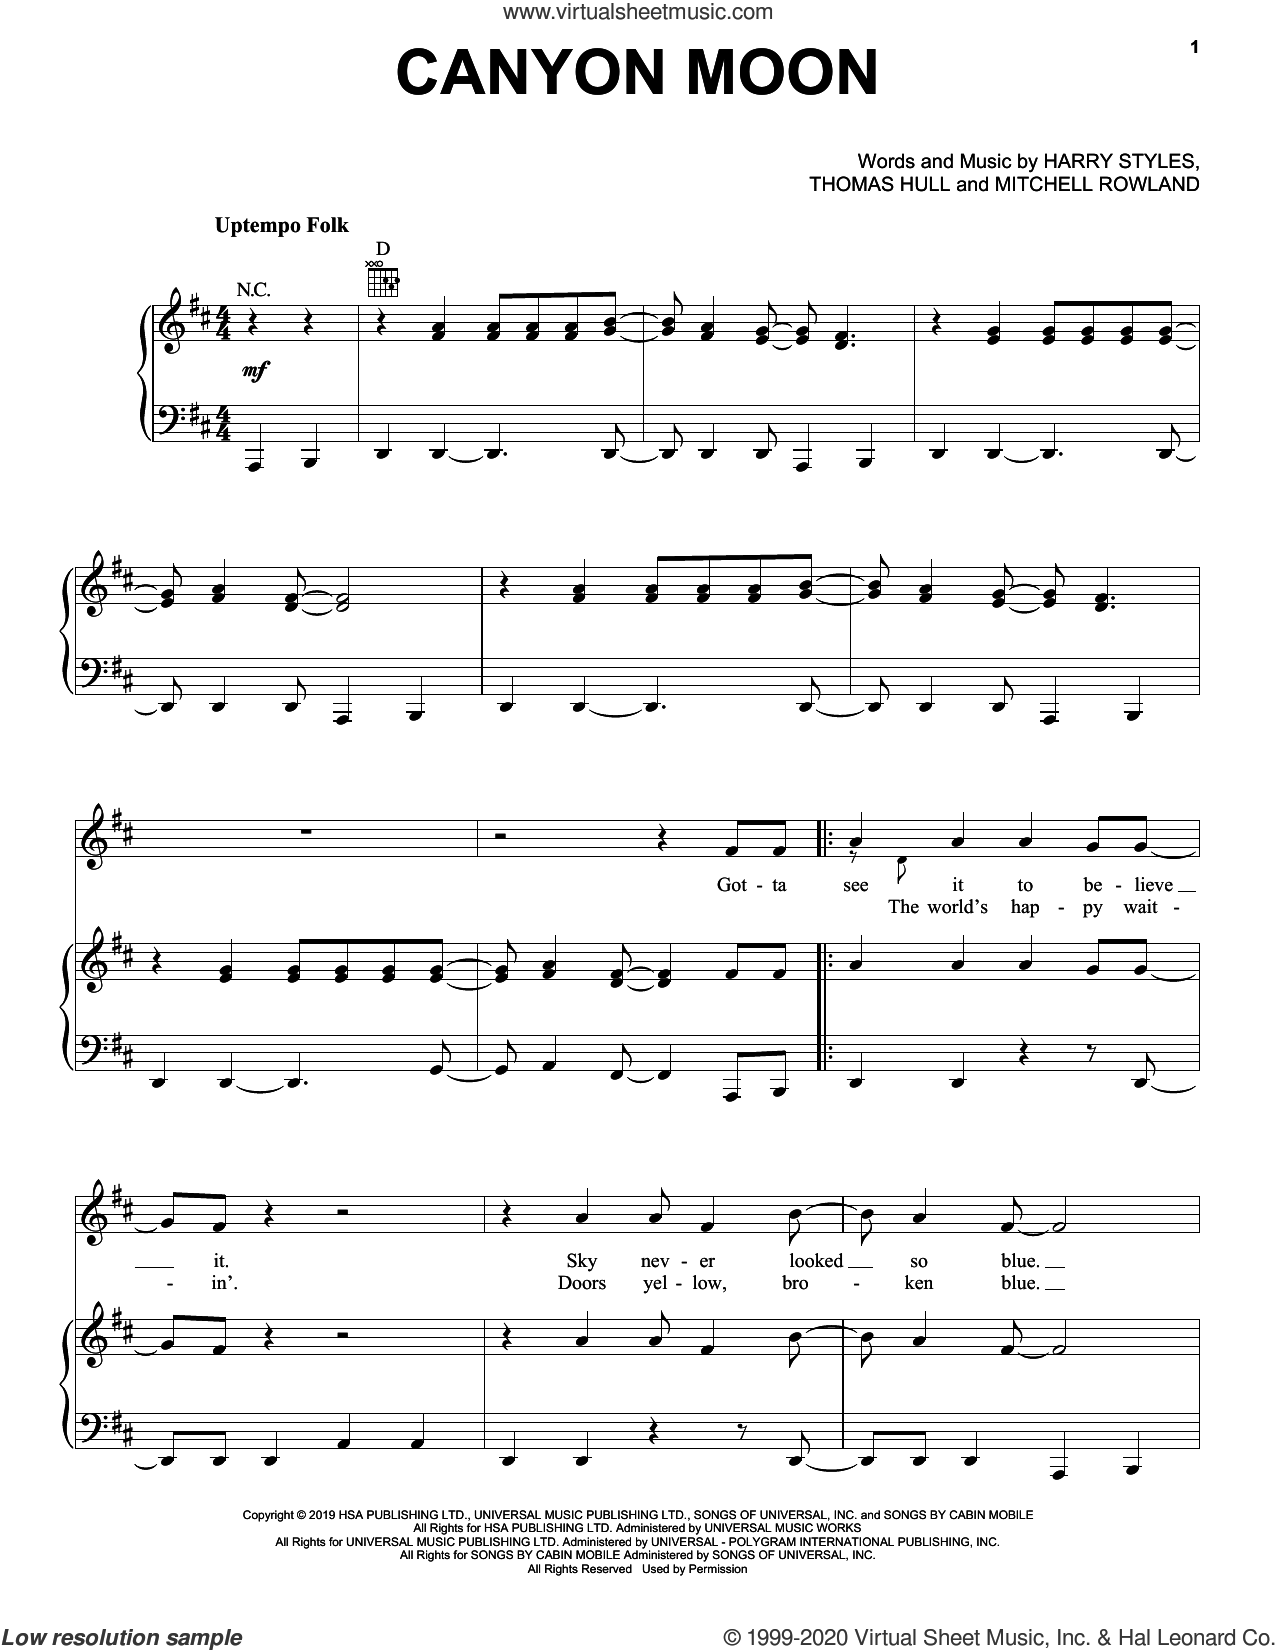 Canyon Moon sheet music for voice, piano or guitar by Harry Styles, Mitchell Rowland and Tom Hull, intermediate skill level